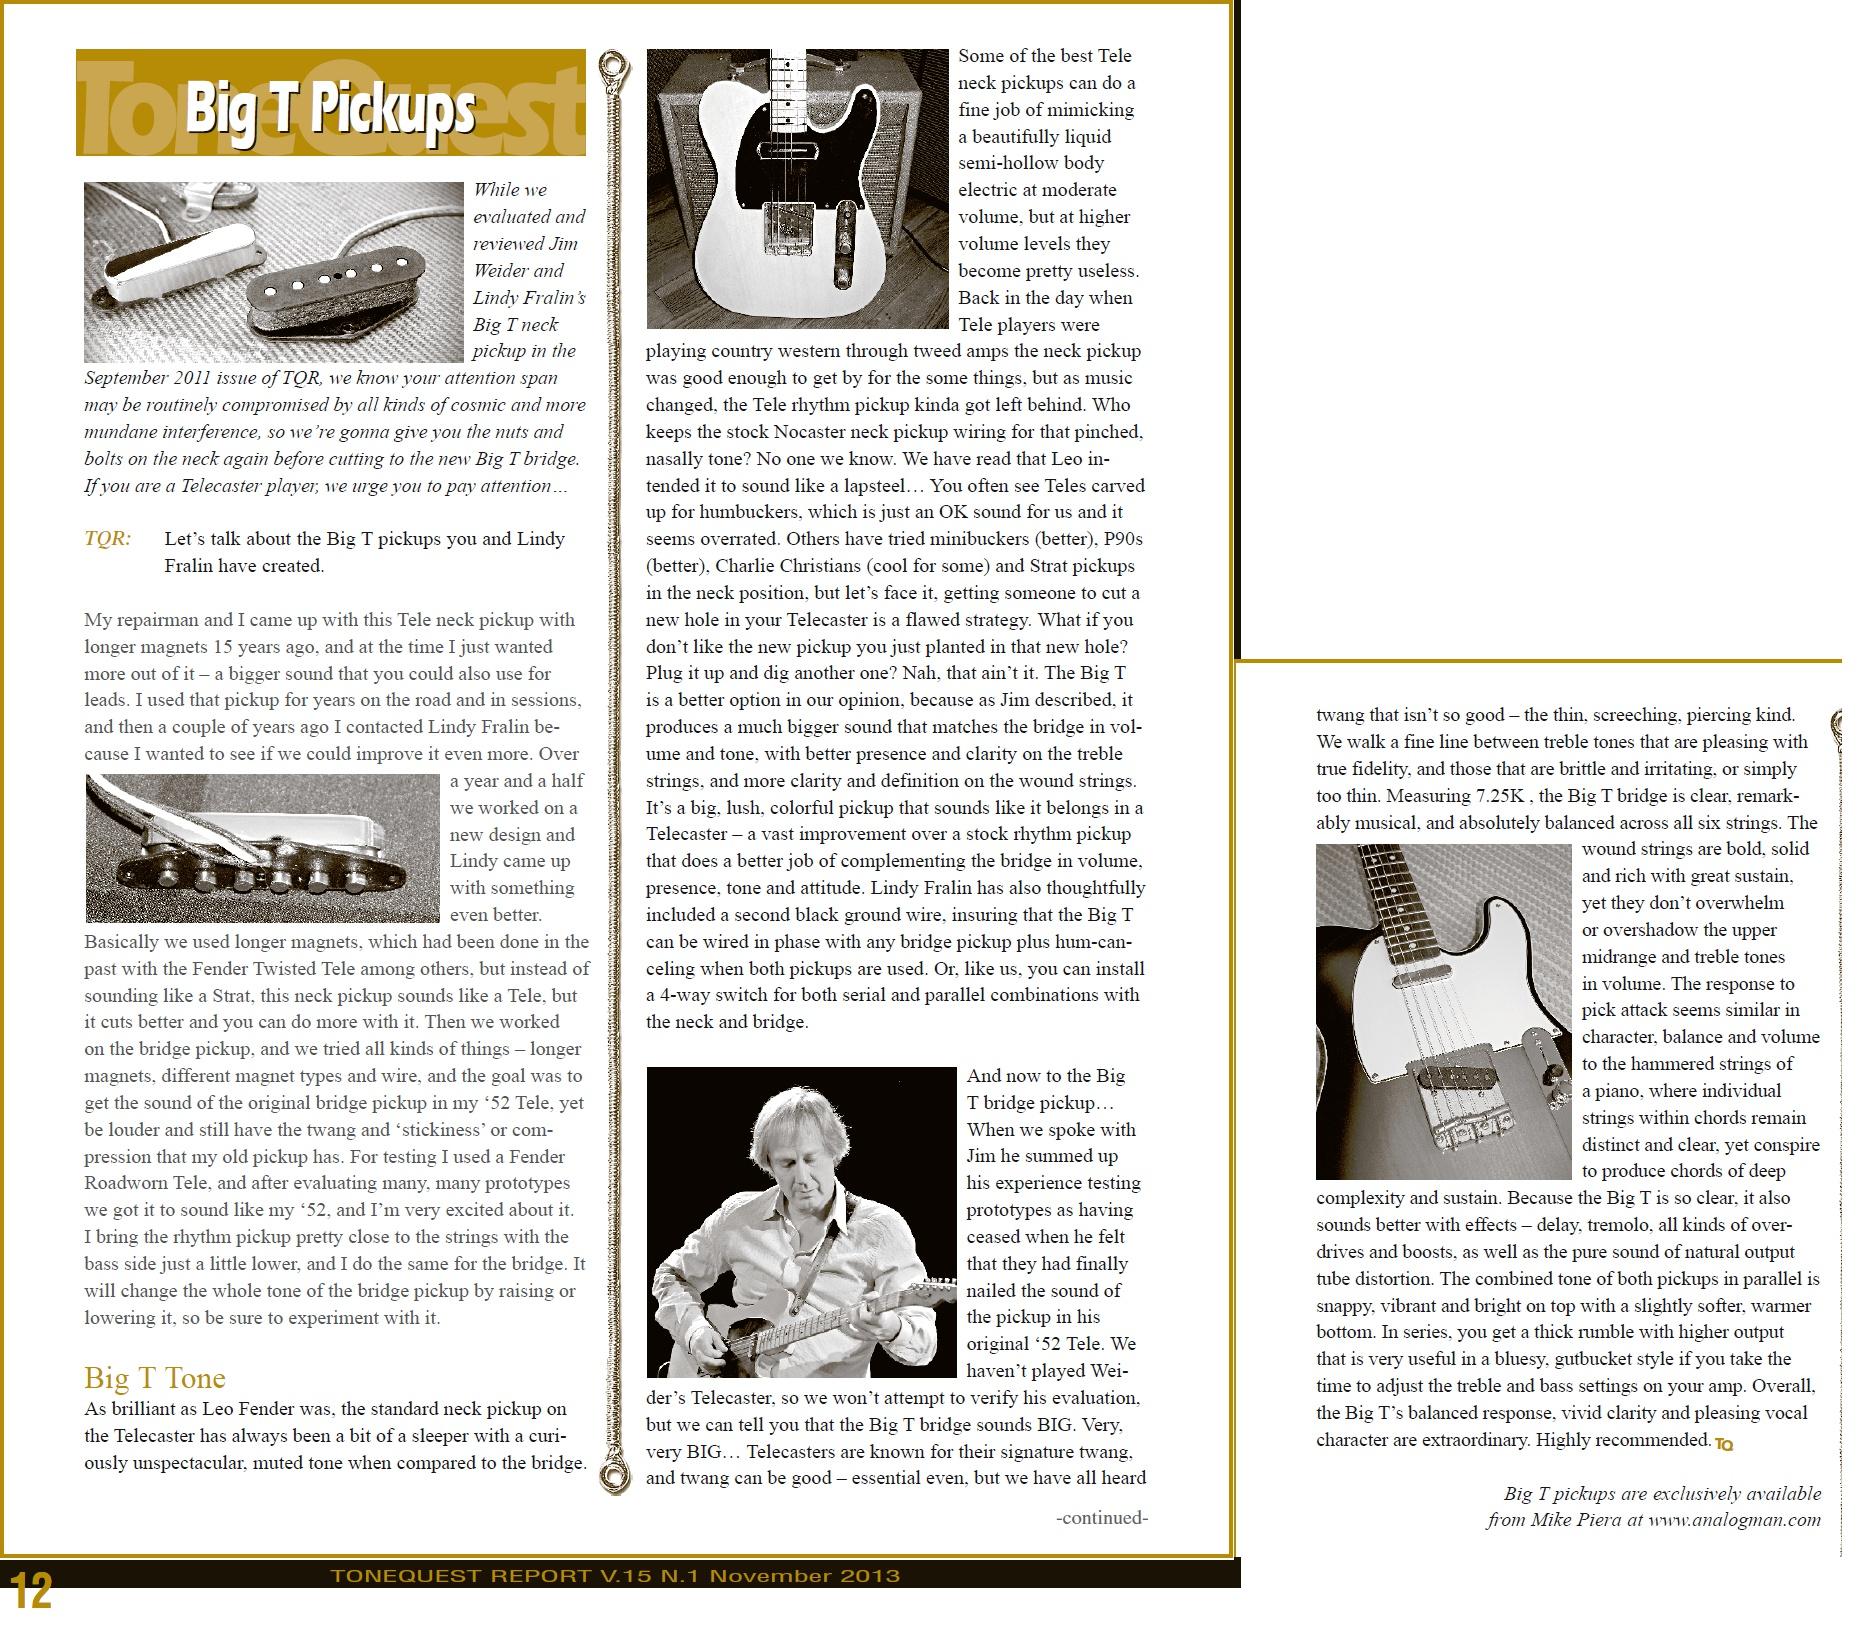 Analog Man Jim Weider Big T Telecaster Neck Pickup Wiring 2 Volume 1 Tone Additionally Two Humbucker 5 Way Switch Here Is An Article From Quest Report Magazine About The Pickups